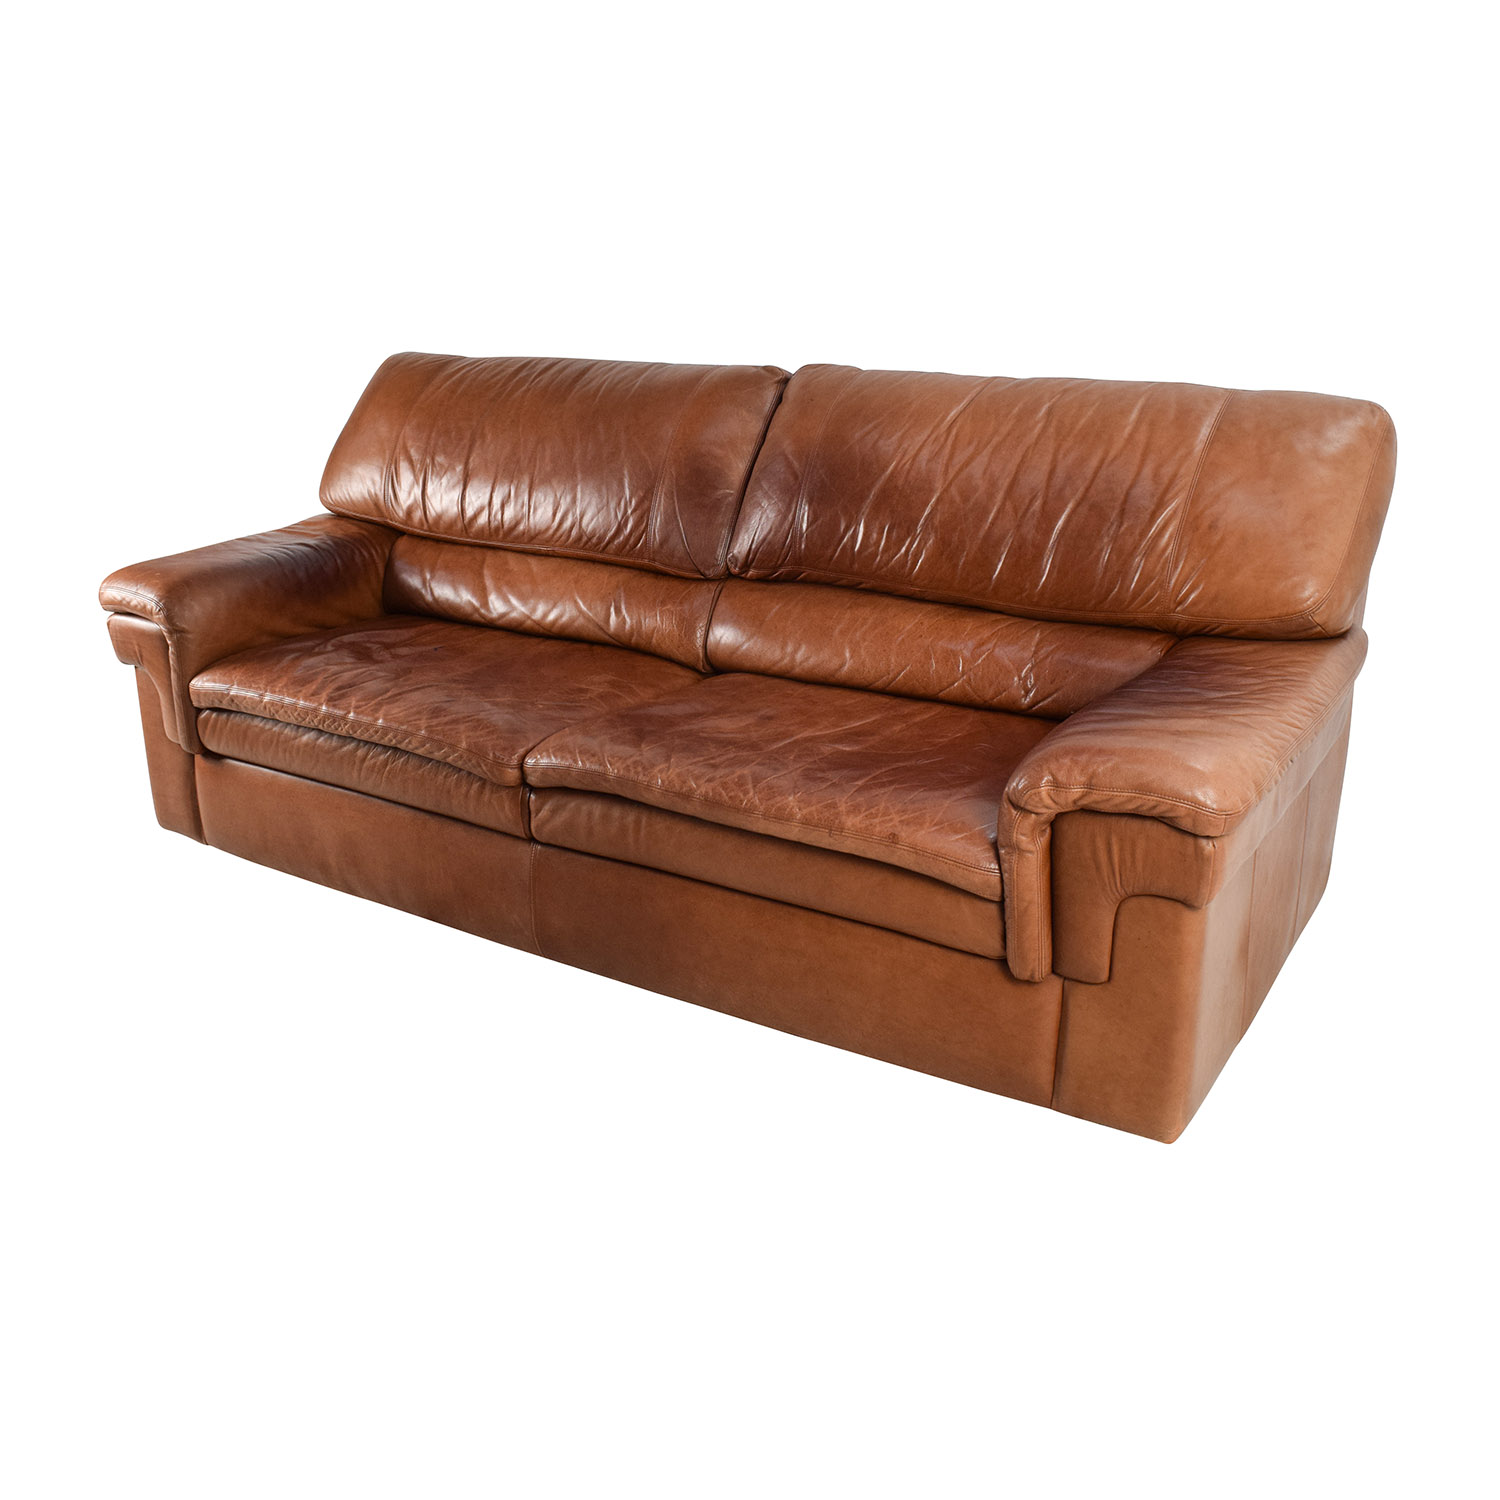 Sofas Leder 71% Off - Classic Cherry Brown Leather Sofa / Sofas